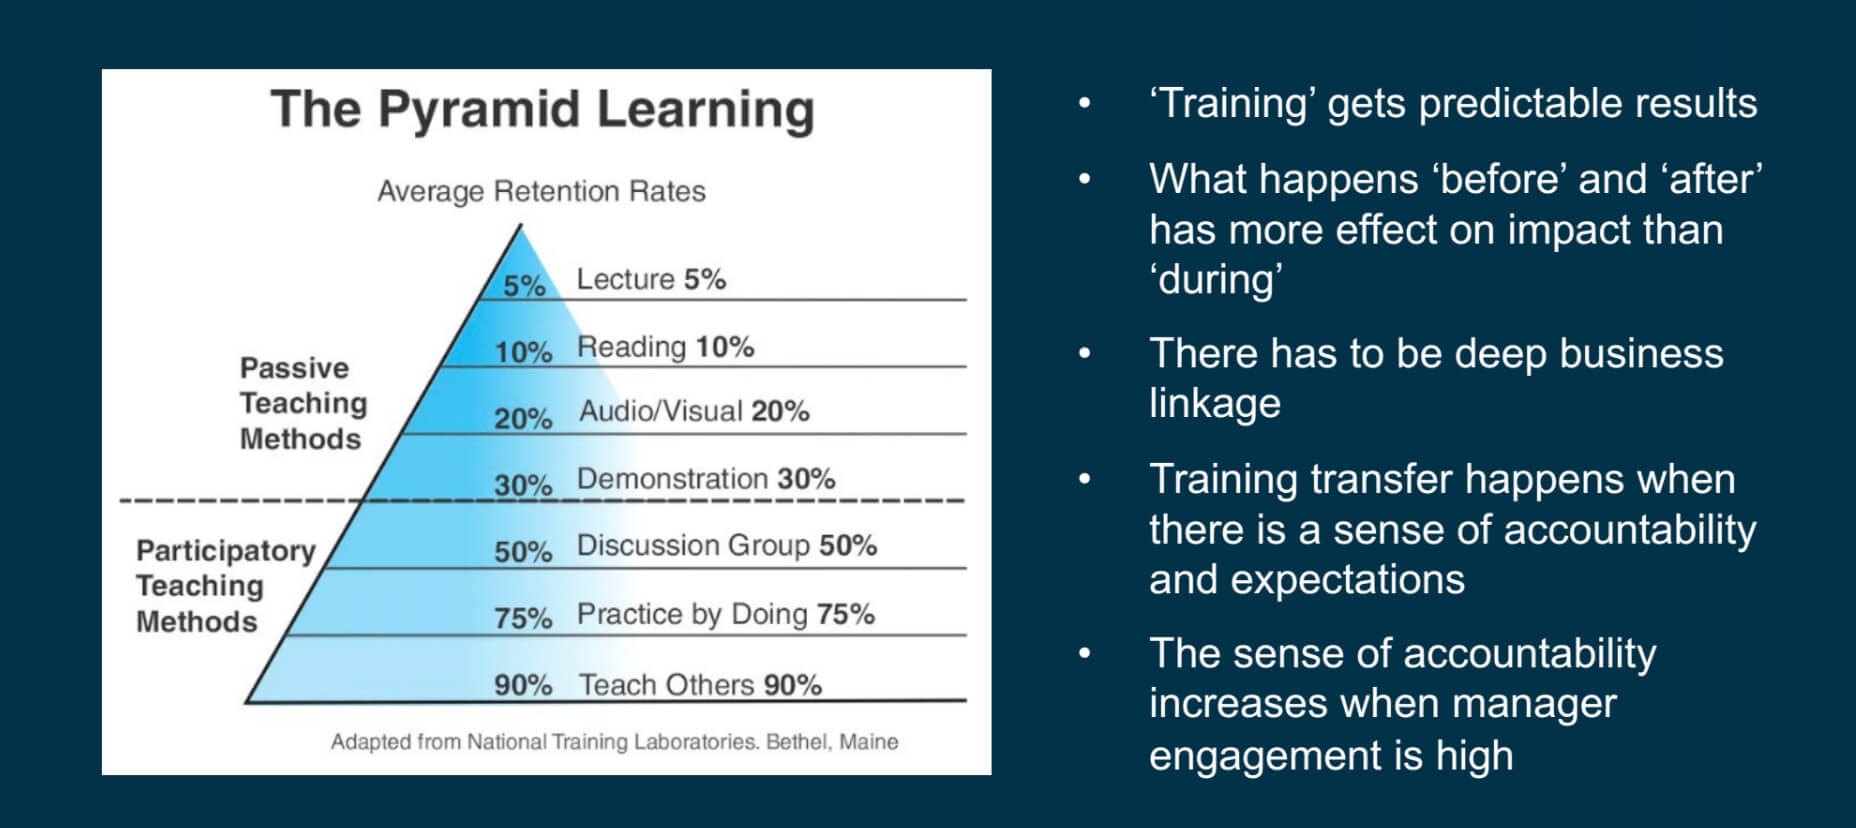 The Pyramid Learning: 'Training' gets predictable results and what happens 'before' and 'after' has more effect on impact than 'during'.